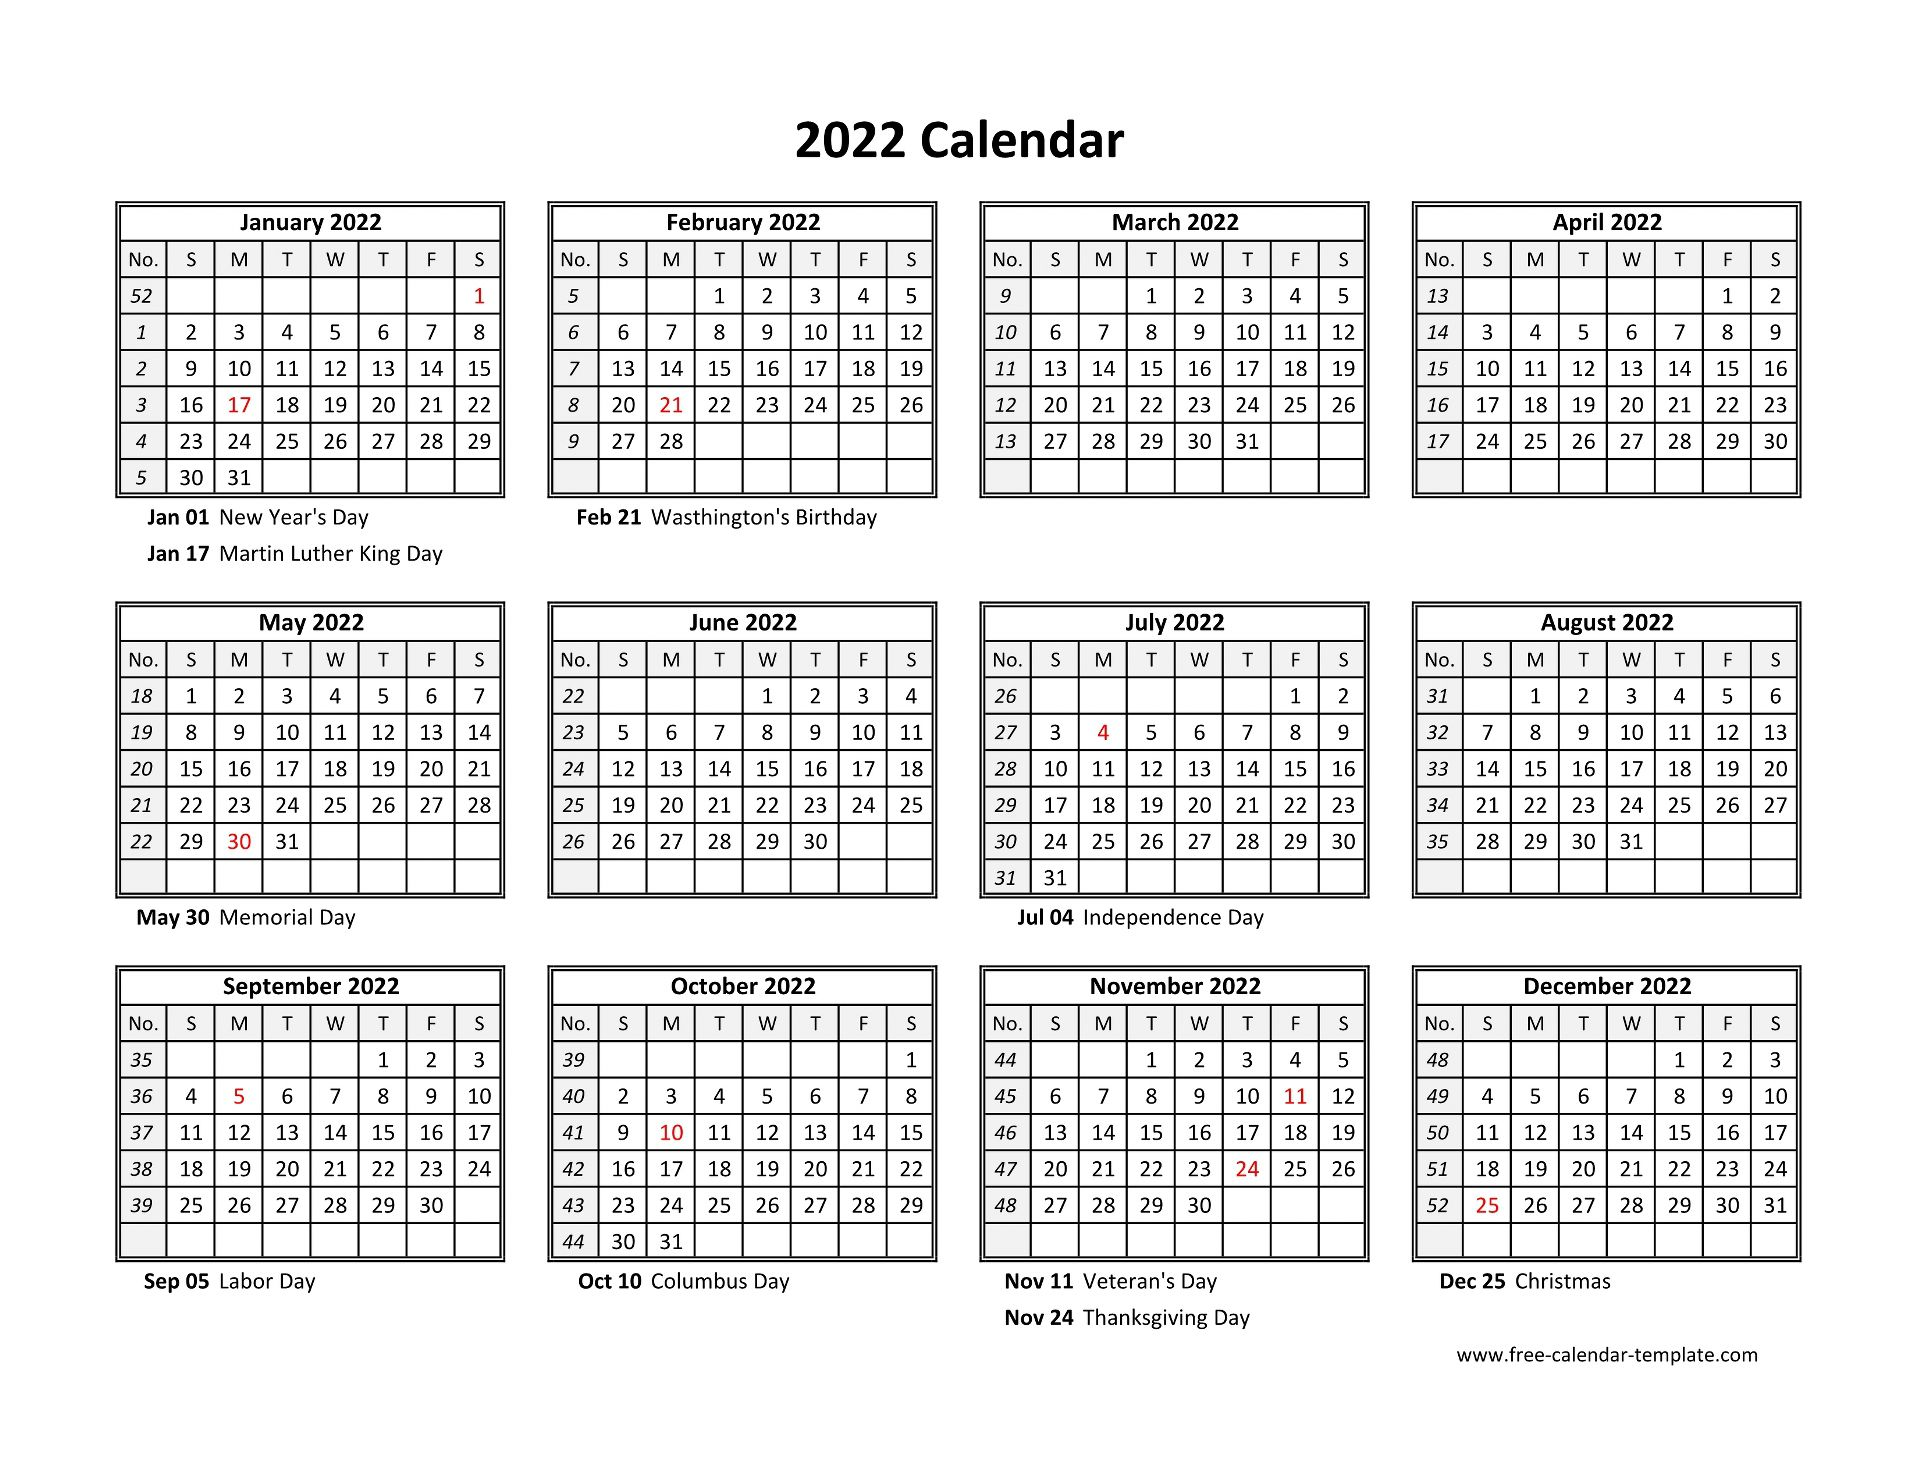 Download free printable 2022 yearly calendar template to make a plan for an entire year. Yearly calendar 2022 printable with federal holidays ...